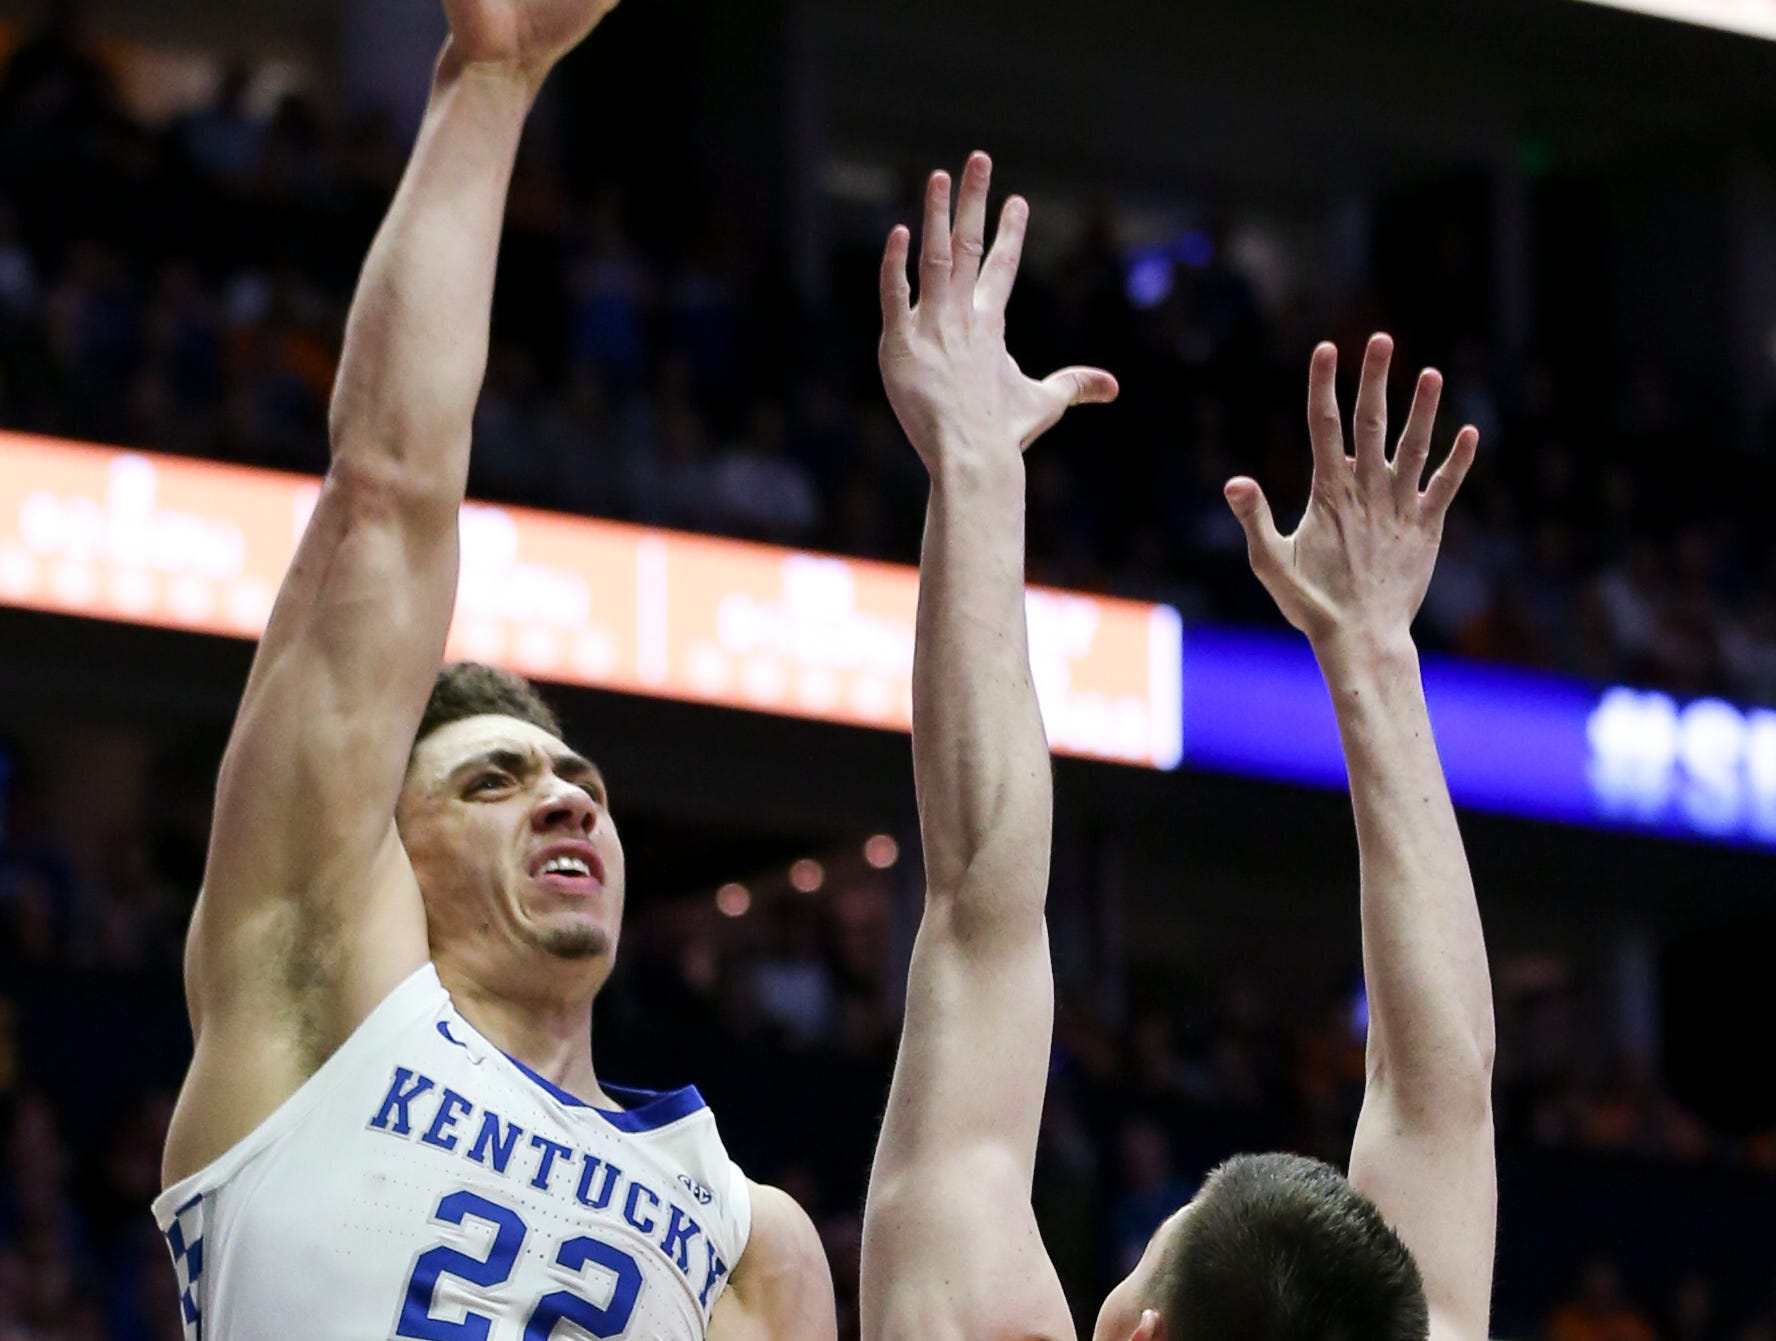 Kentucky forward Reid Travis (22) shoots over Tennessee forward John Fulkerson (10) during the first half of the SEC Men's Basketball Tournament semifinal game at Bridgestone Arena in Nashville, Tenn., Saturday, March 16, 2019.